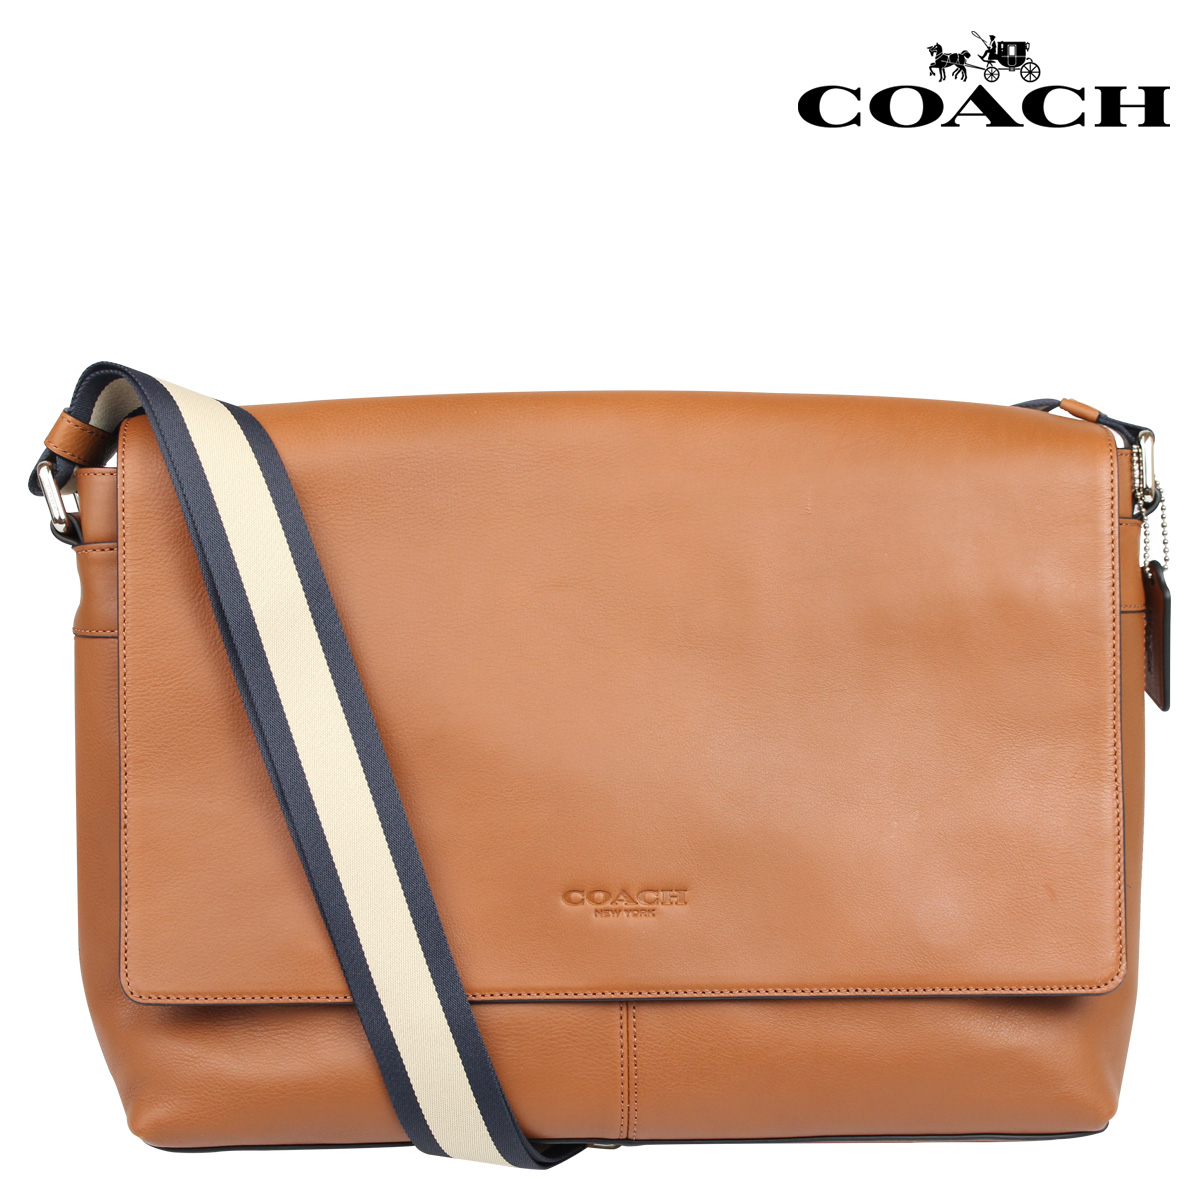 8d3d79a84667 ... where can i buy coach coach mens messenger bag shoulder bags f71726  saddle sullivan leather messenger